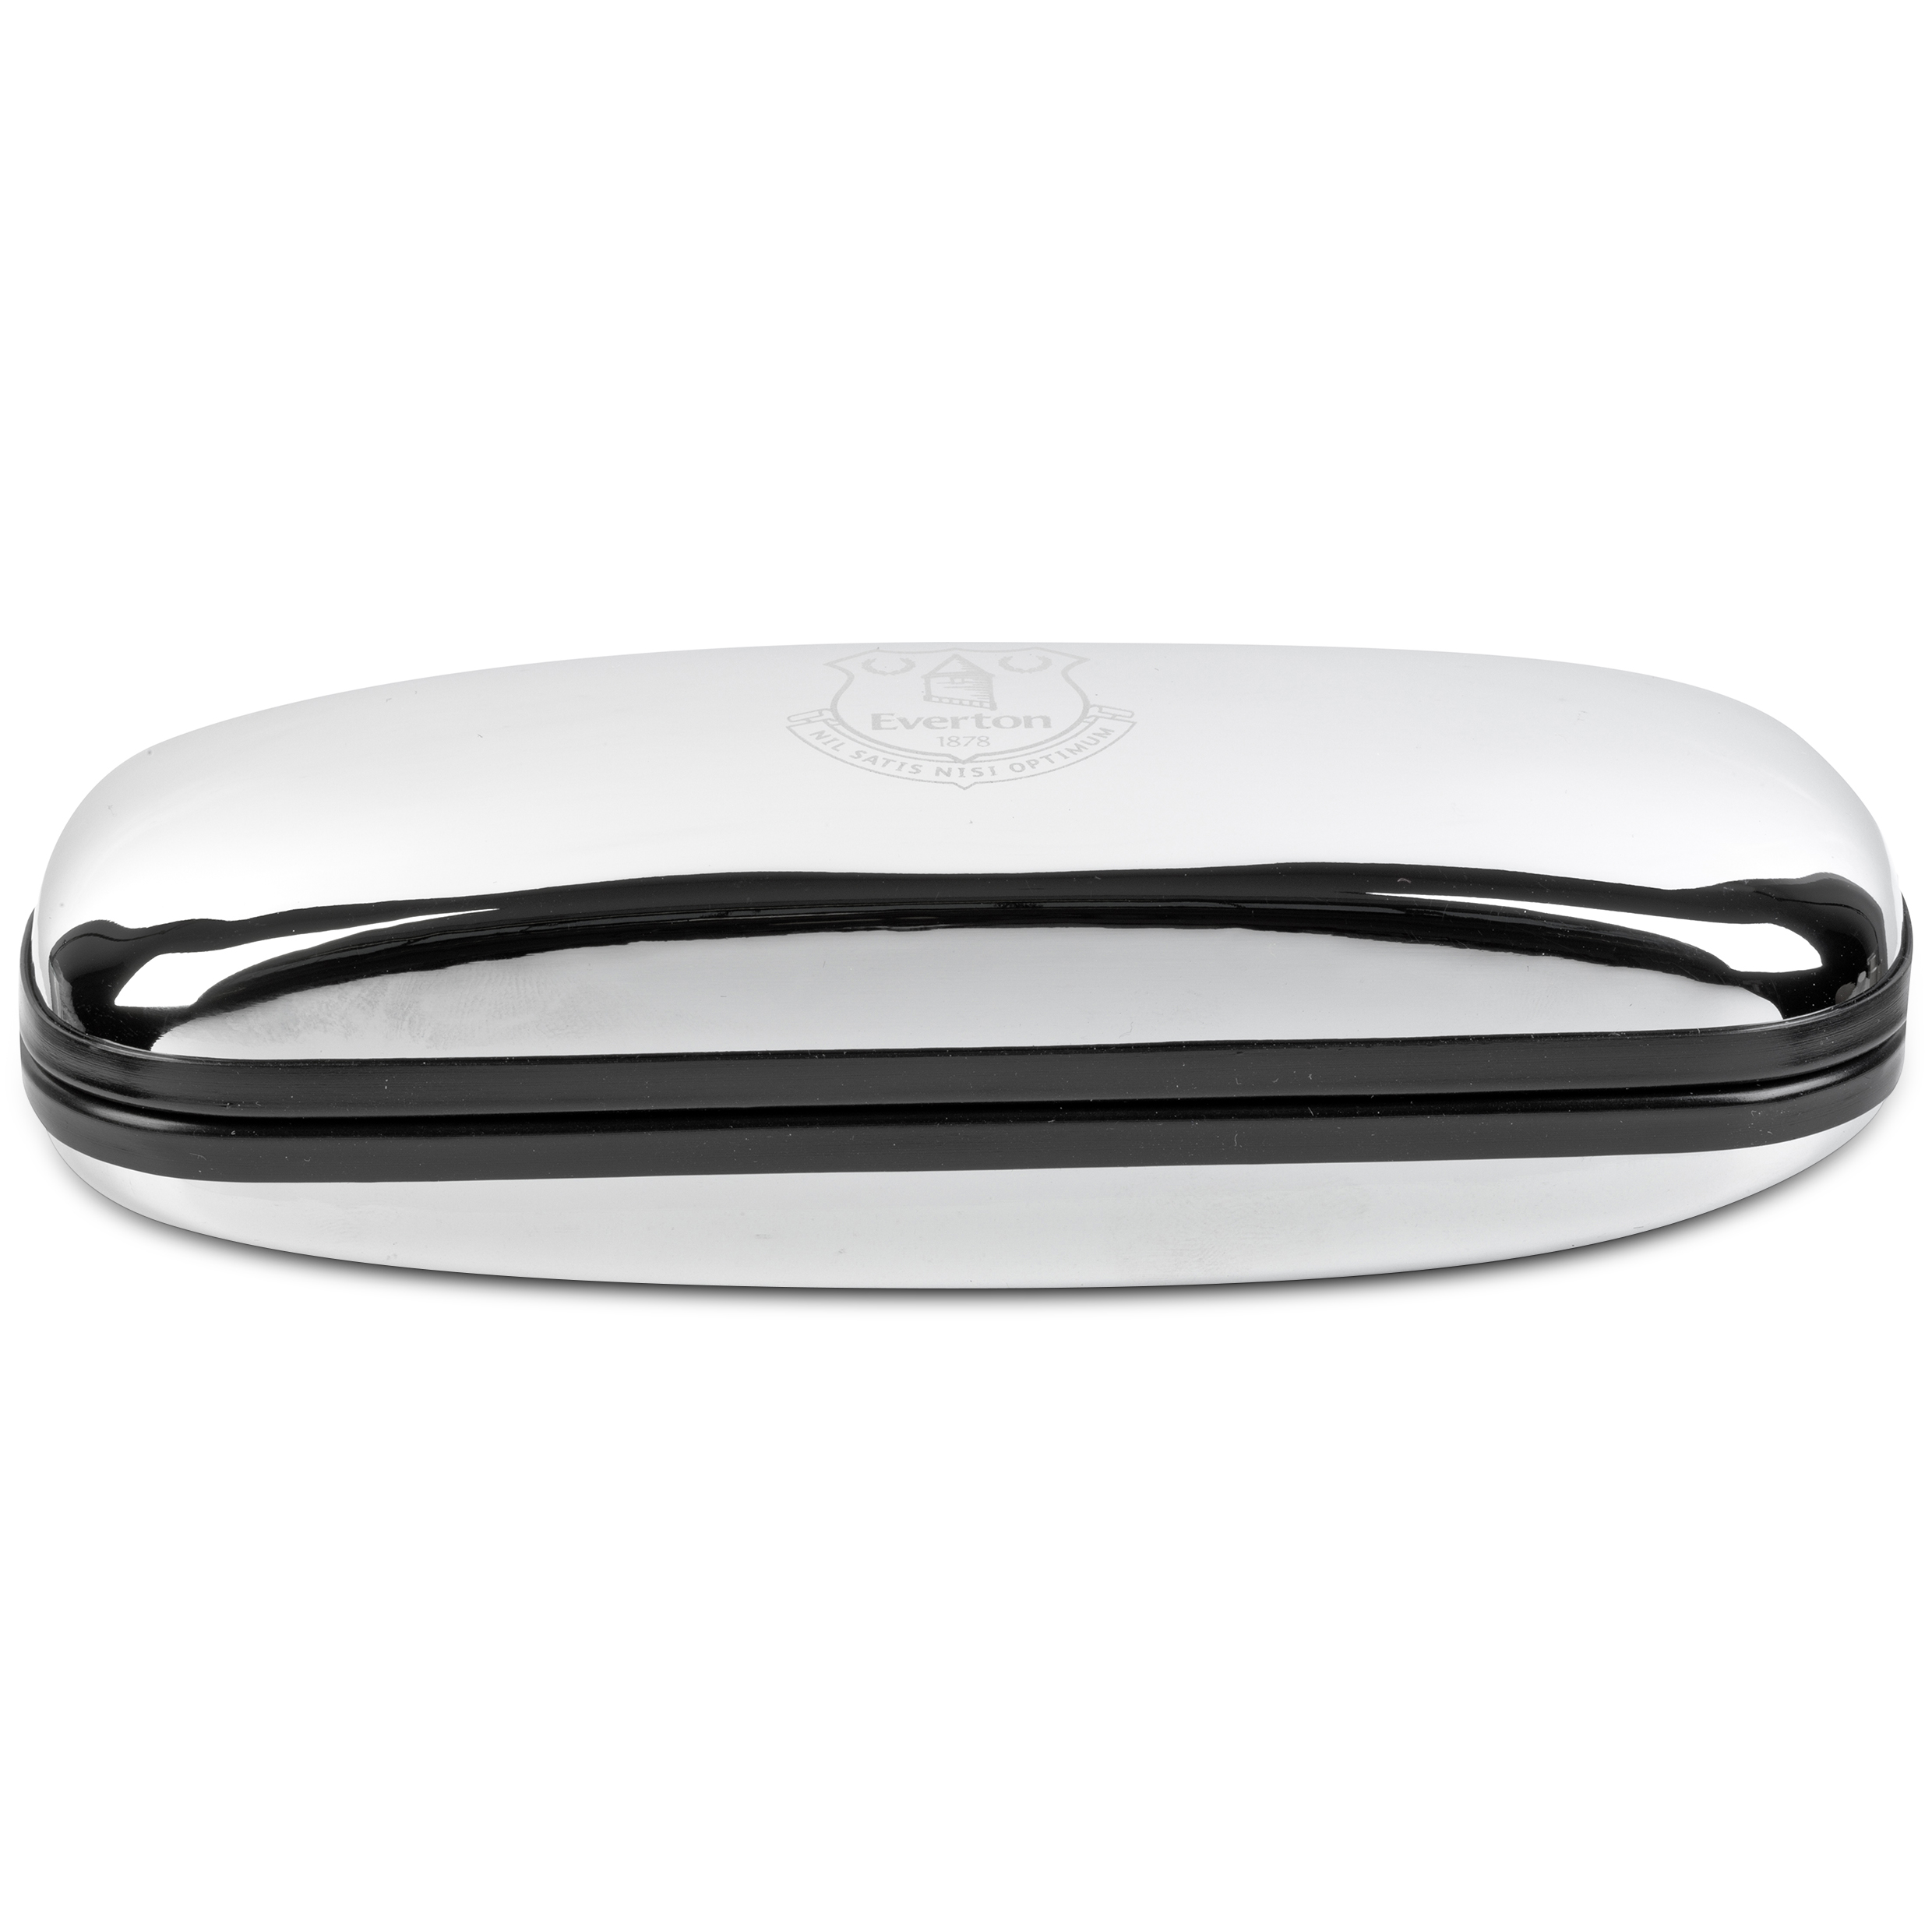 Everton Chrome Glasses Case